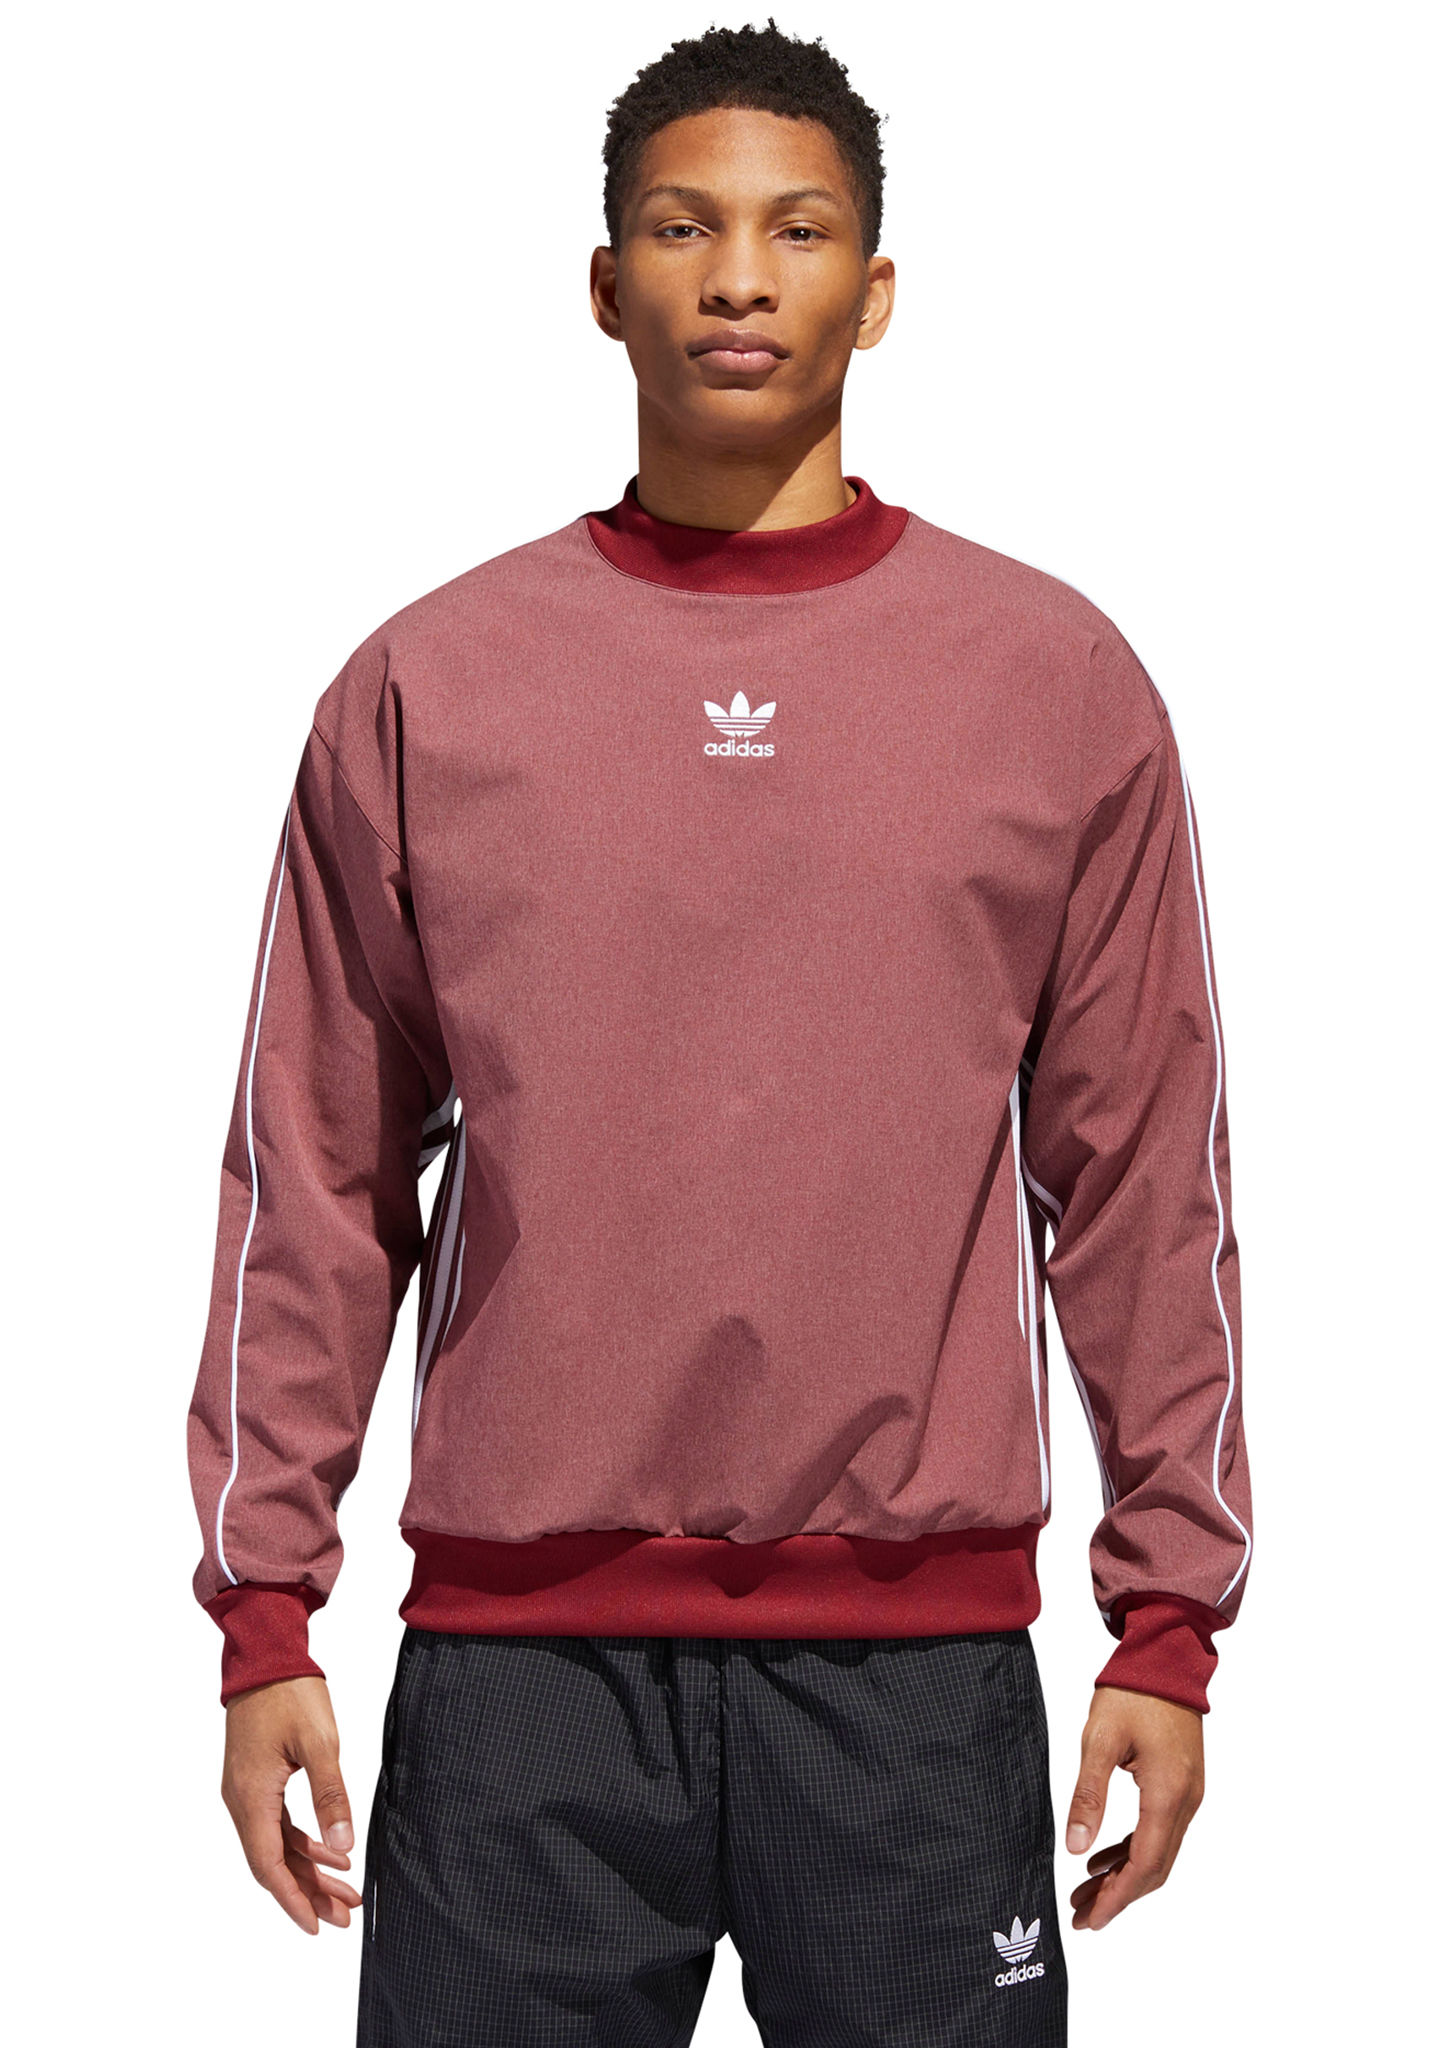 4a6dcbf21fcb ADIDAS ORIGINALS Auth Stripe Crew - Sweatshirt for Men - Red - Planet Sports